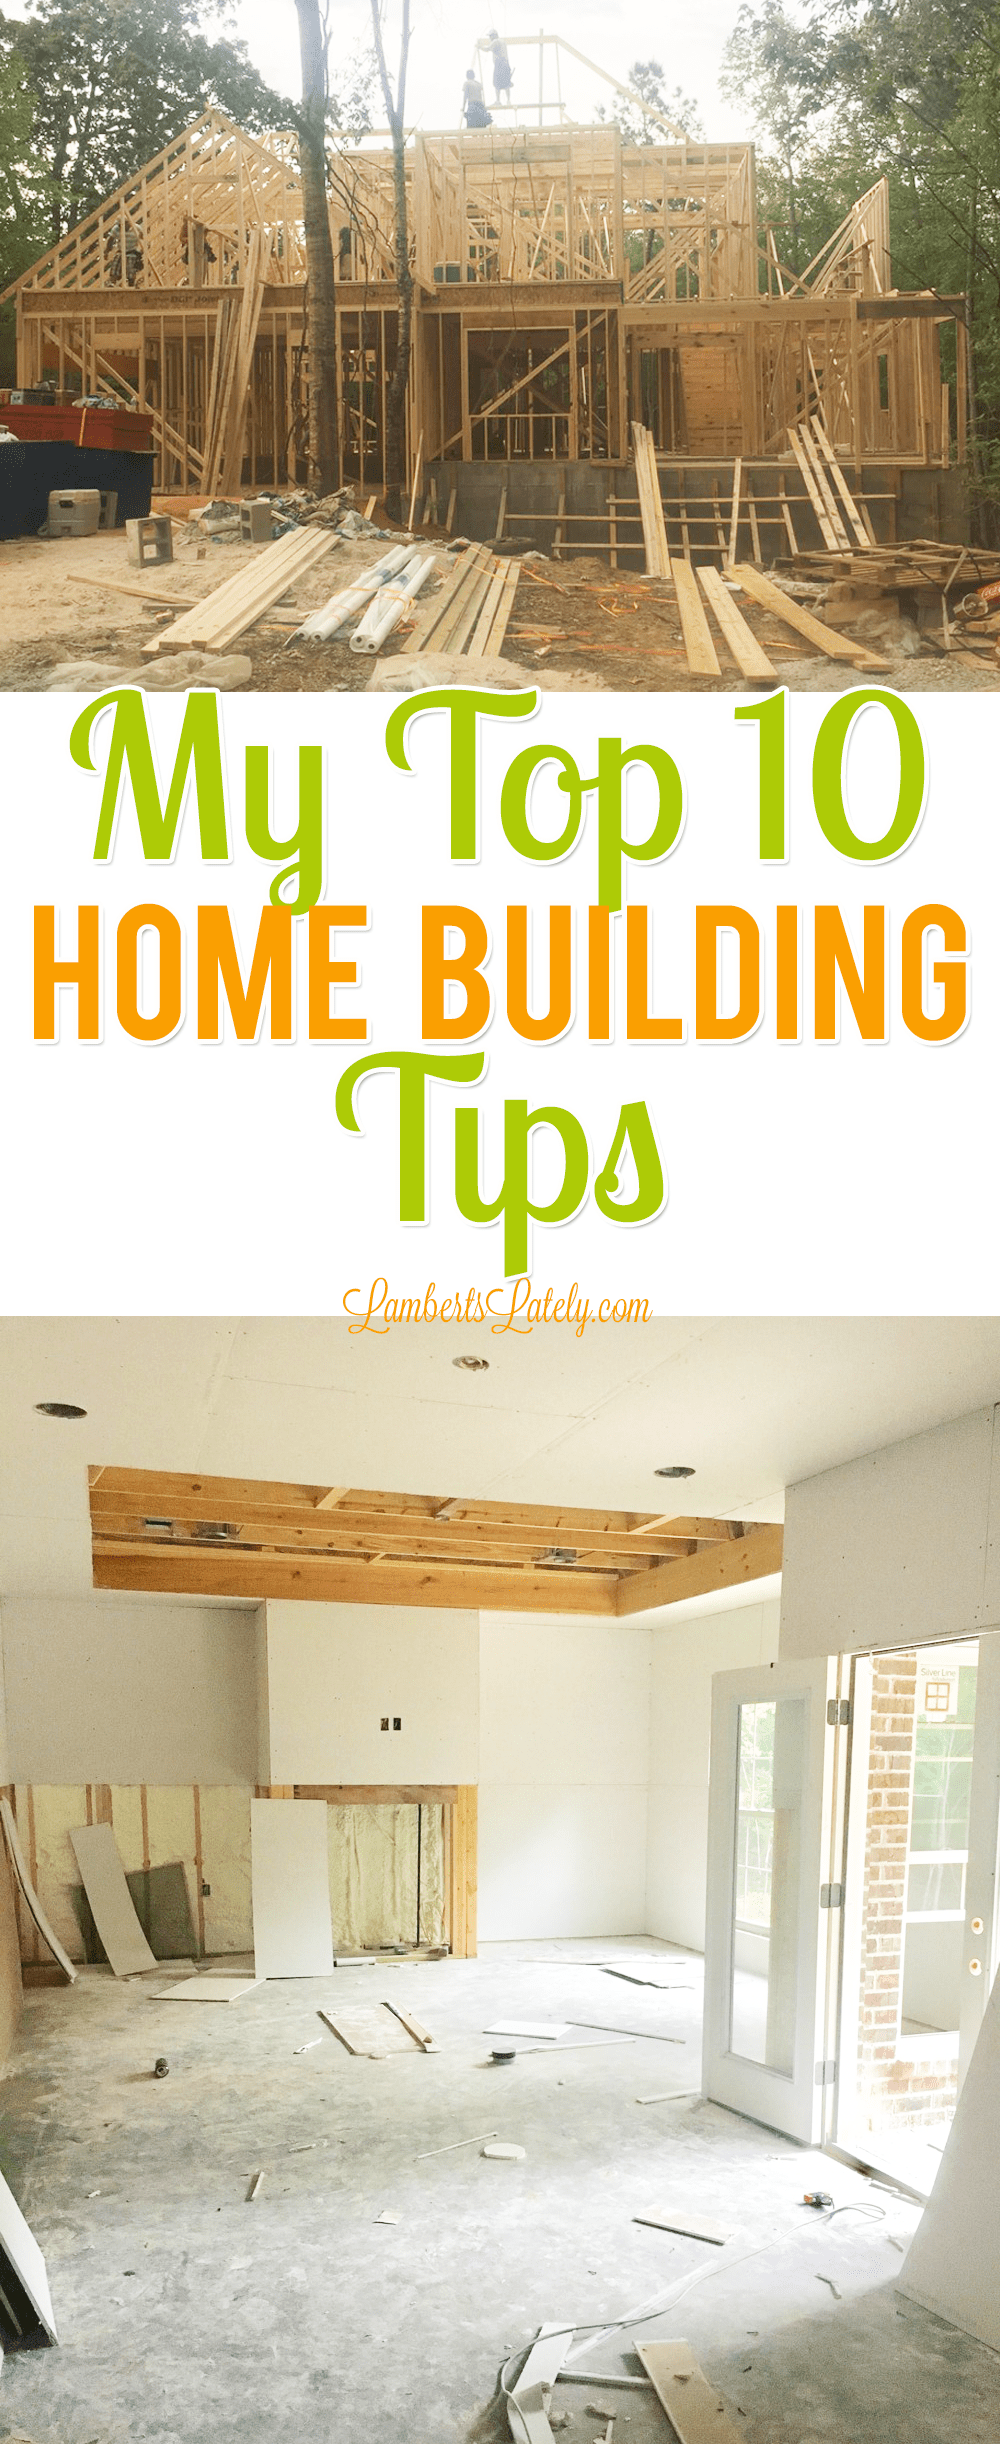 Great home building tips, including ideas for how to manage time and budget...even shares how to prioritize and choose design features. This will help with saving money and sanity throughout the construction process!